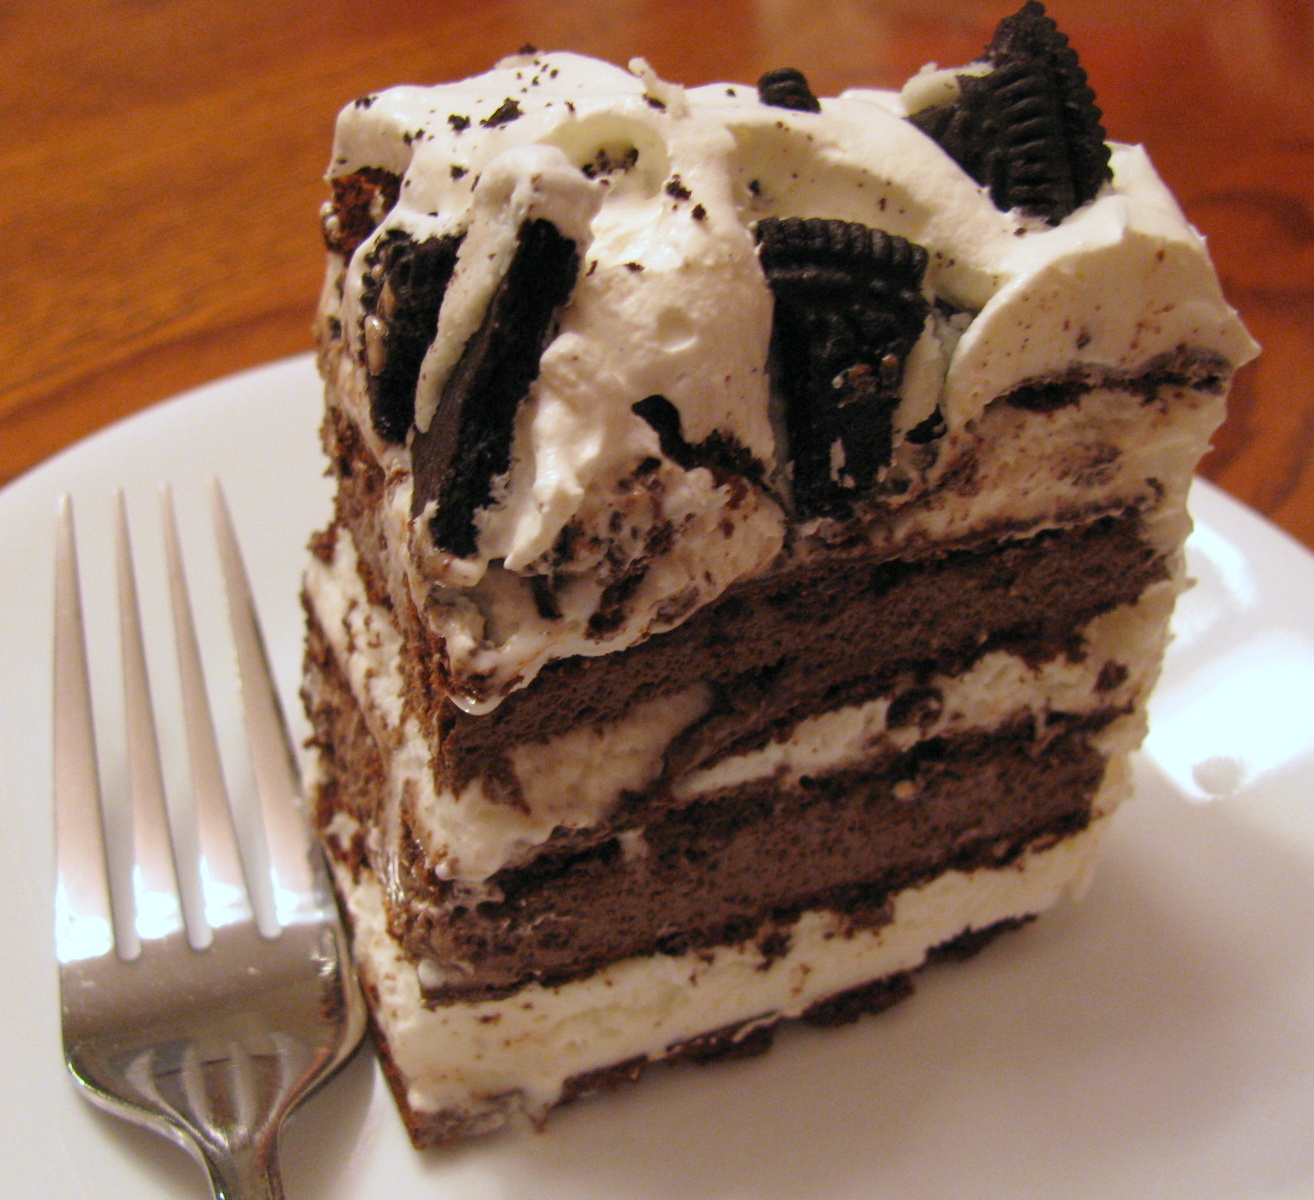 This no bake ice cream cake recipe can be prepared in about 5 minutes (plus freezing time). Layered w/ chocolate ice cream, vanilla ice cream sandwiches, hot fudge, and crushed Oreo cookies AND topped off w/ whipped cream & more Oreos, it will knock your guests' socks off!